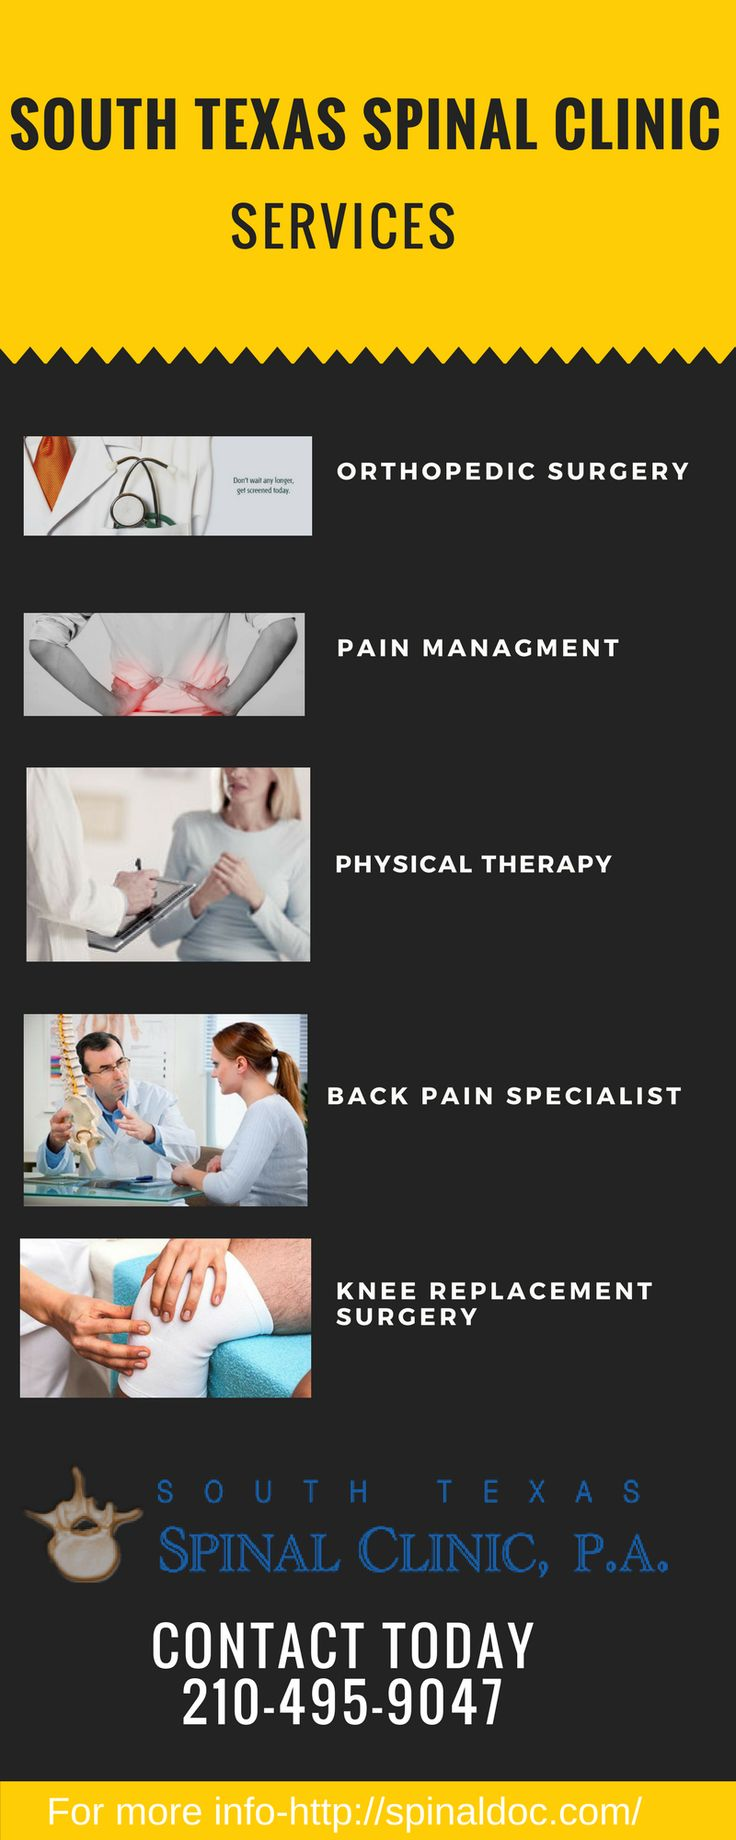 South Texas Spinal Clinic  Are you are thinking about spine surgery for neck pain, back pain, or other pain? for more detail visit at http://spinaldoc.com/